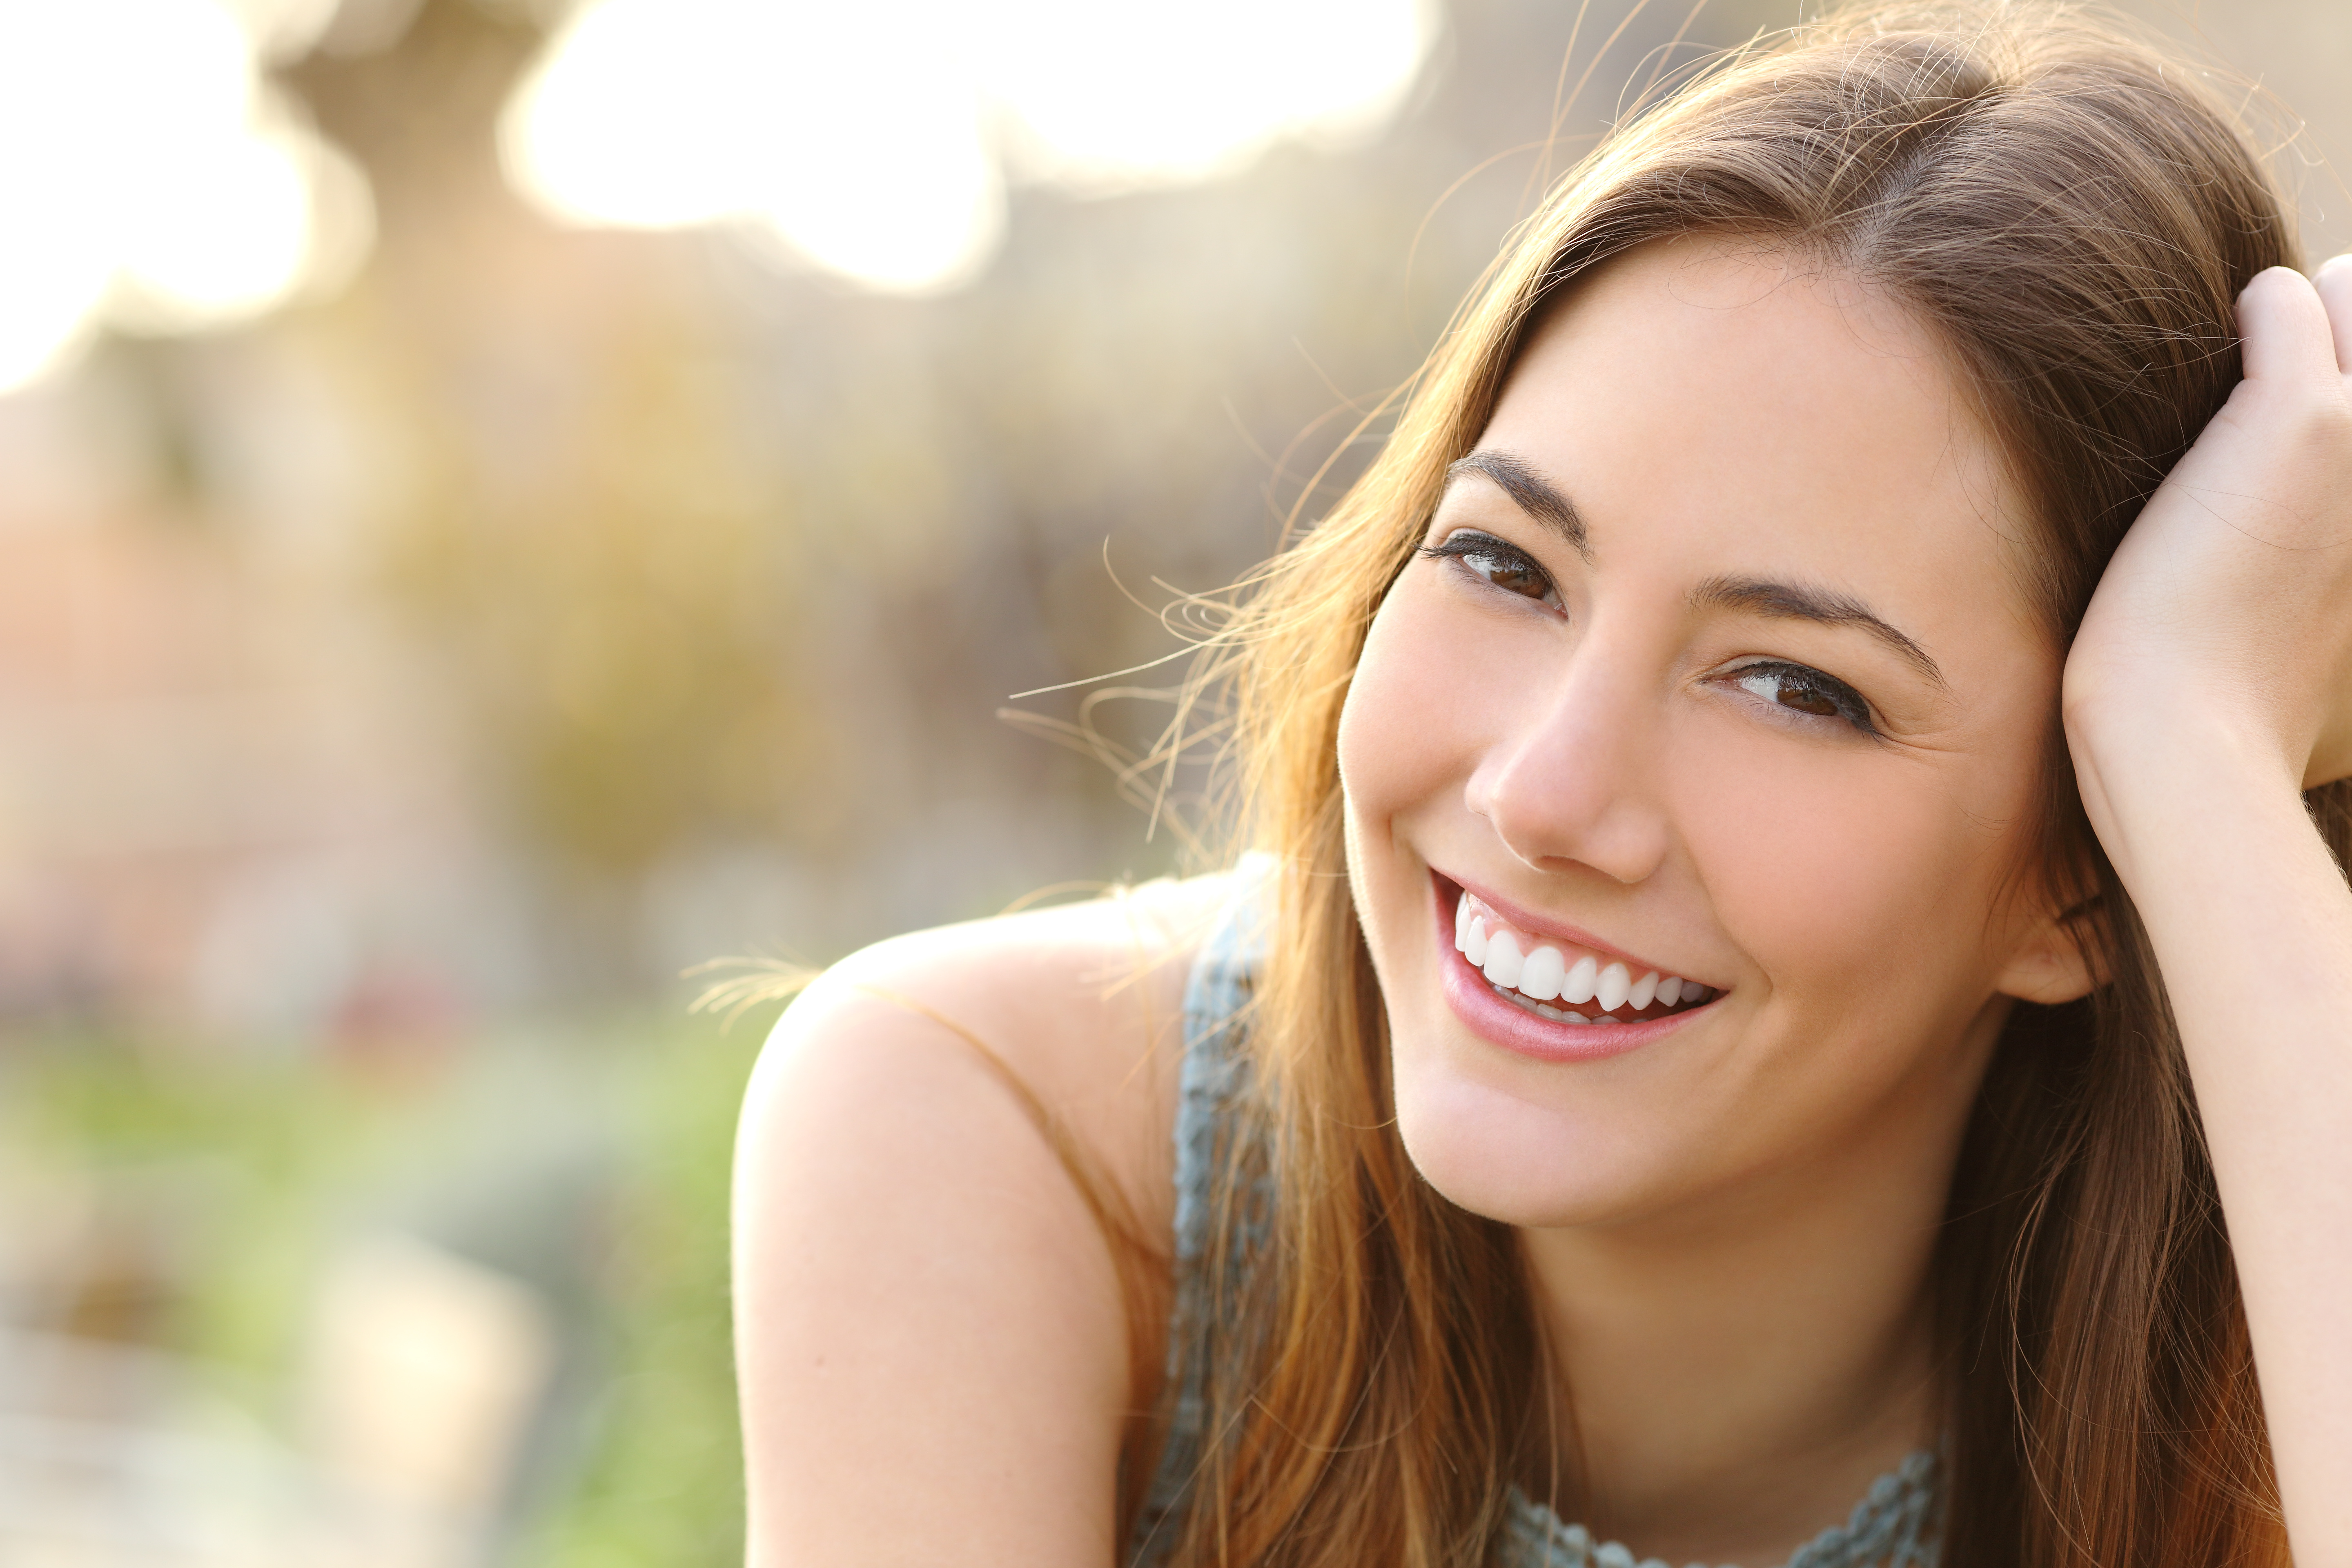 happy, smiling young woman